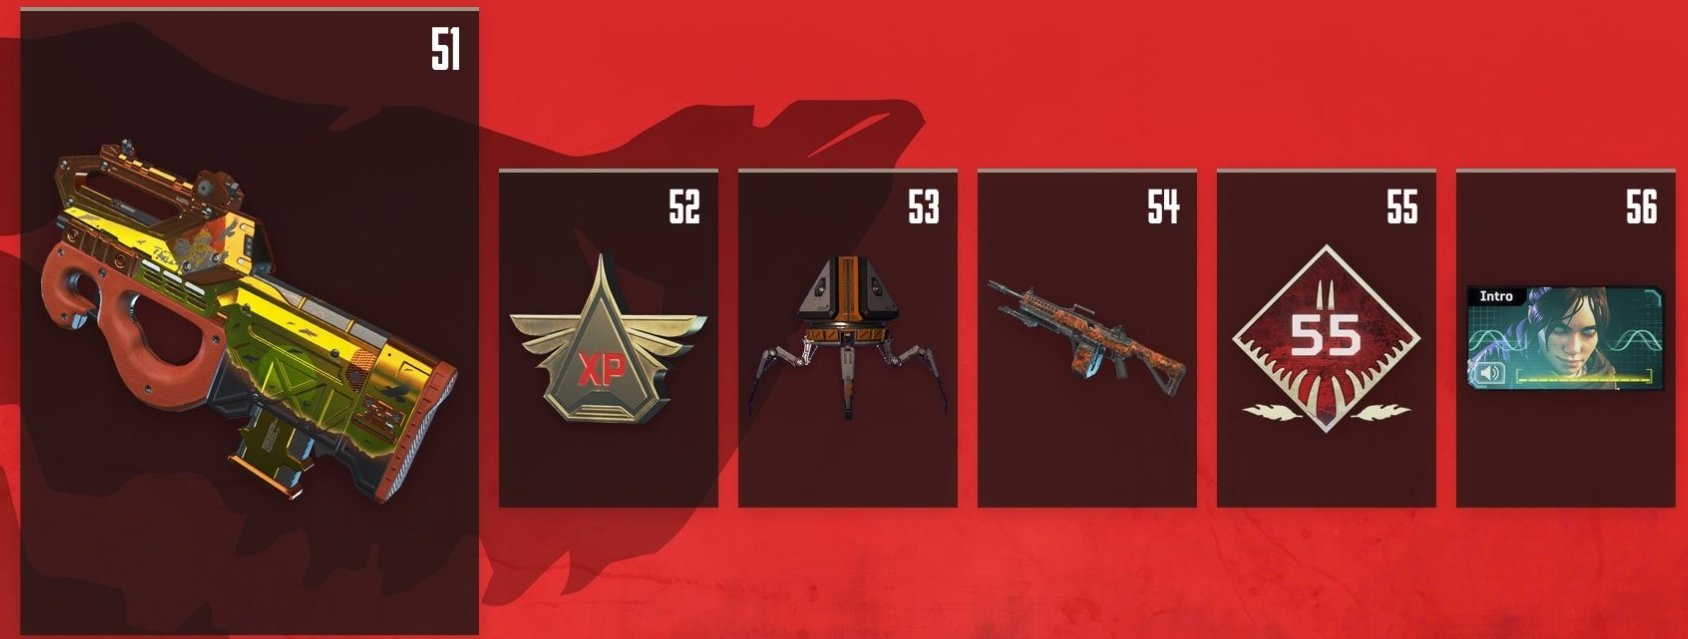 Apex Legends Battle Pass Rewards Levels 51-56